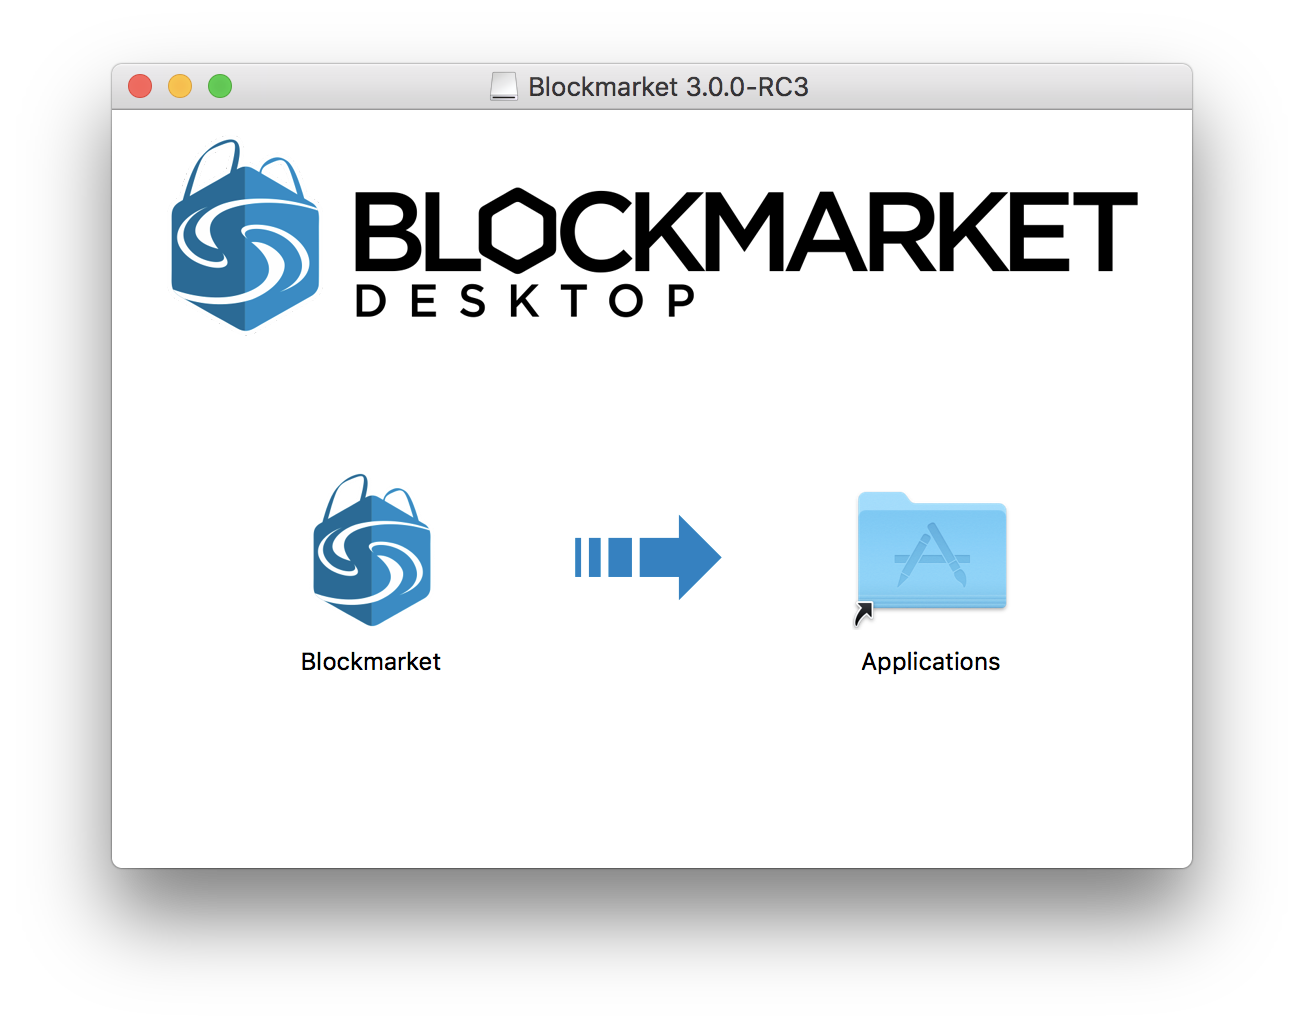 blockmarket desktop 3 0 first time mac os user guide rh medium com Mac User Magazine first time mac user guide 2016